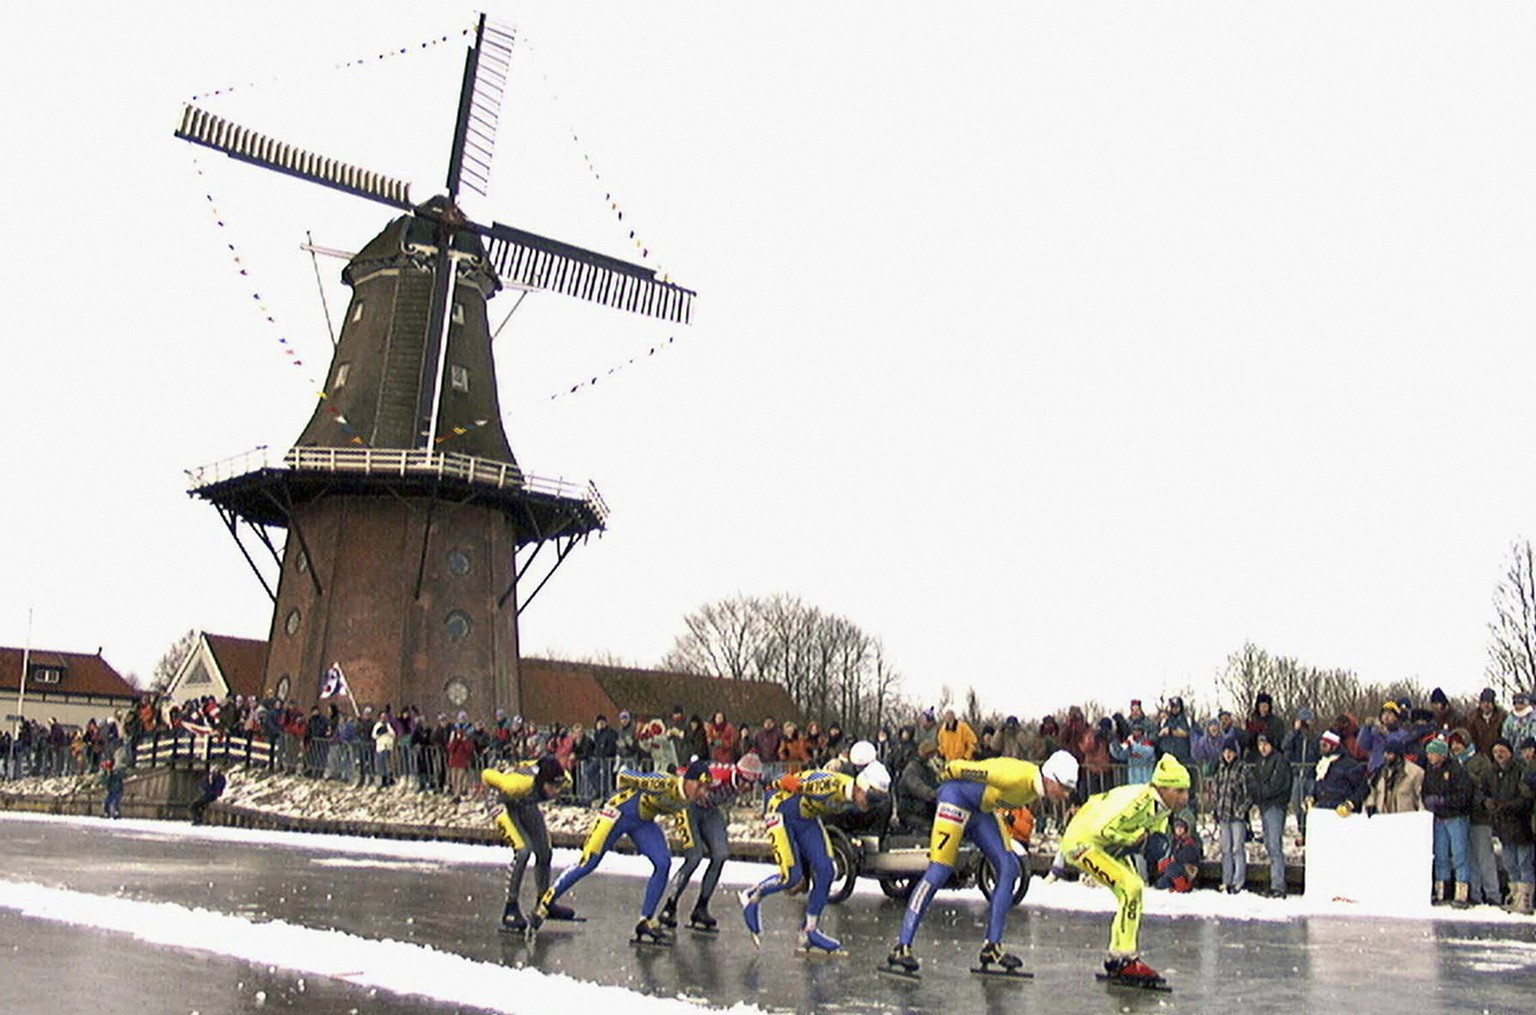 FILE - In this Jan. 4, 1997, file photo, skaters pass a windmill as some 16,000 people participate in the historic 200km skating spectacle the 'Elfstedentocht' (eleven-cities-course) in Birdaard, province of Friesland, northern Netherlands. There is nothing more mythical in Dutch sports than an age-old 11-city race skating across lakes and canals in bone-numbing cold from dawn to dusk. No wonder the Netherlands is the greatest speedskating nation in the world. And with Sven Kramer and Ireen Wust leading the way on big oval in Sochi they are bent on proving it again.  (AP Photo/Dimitri Georganas, File)